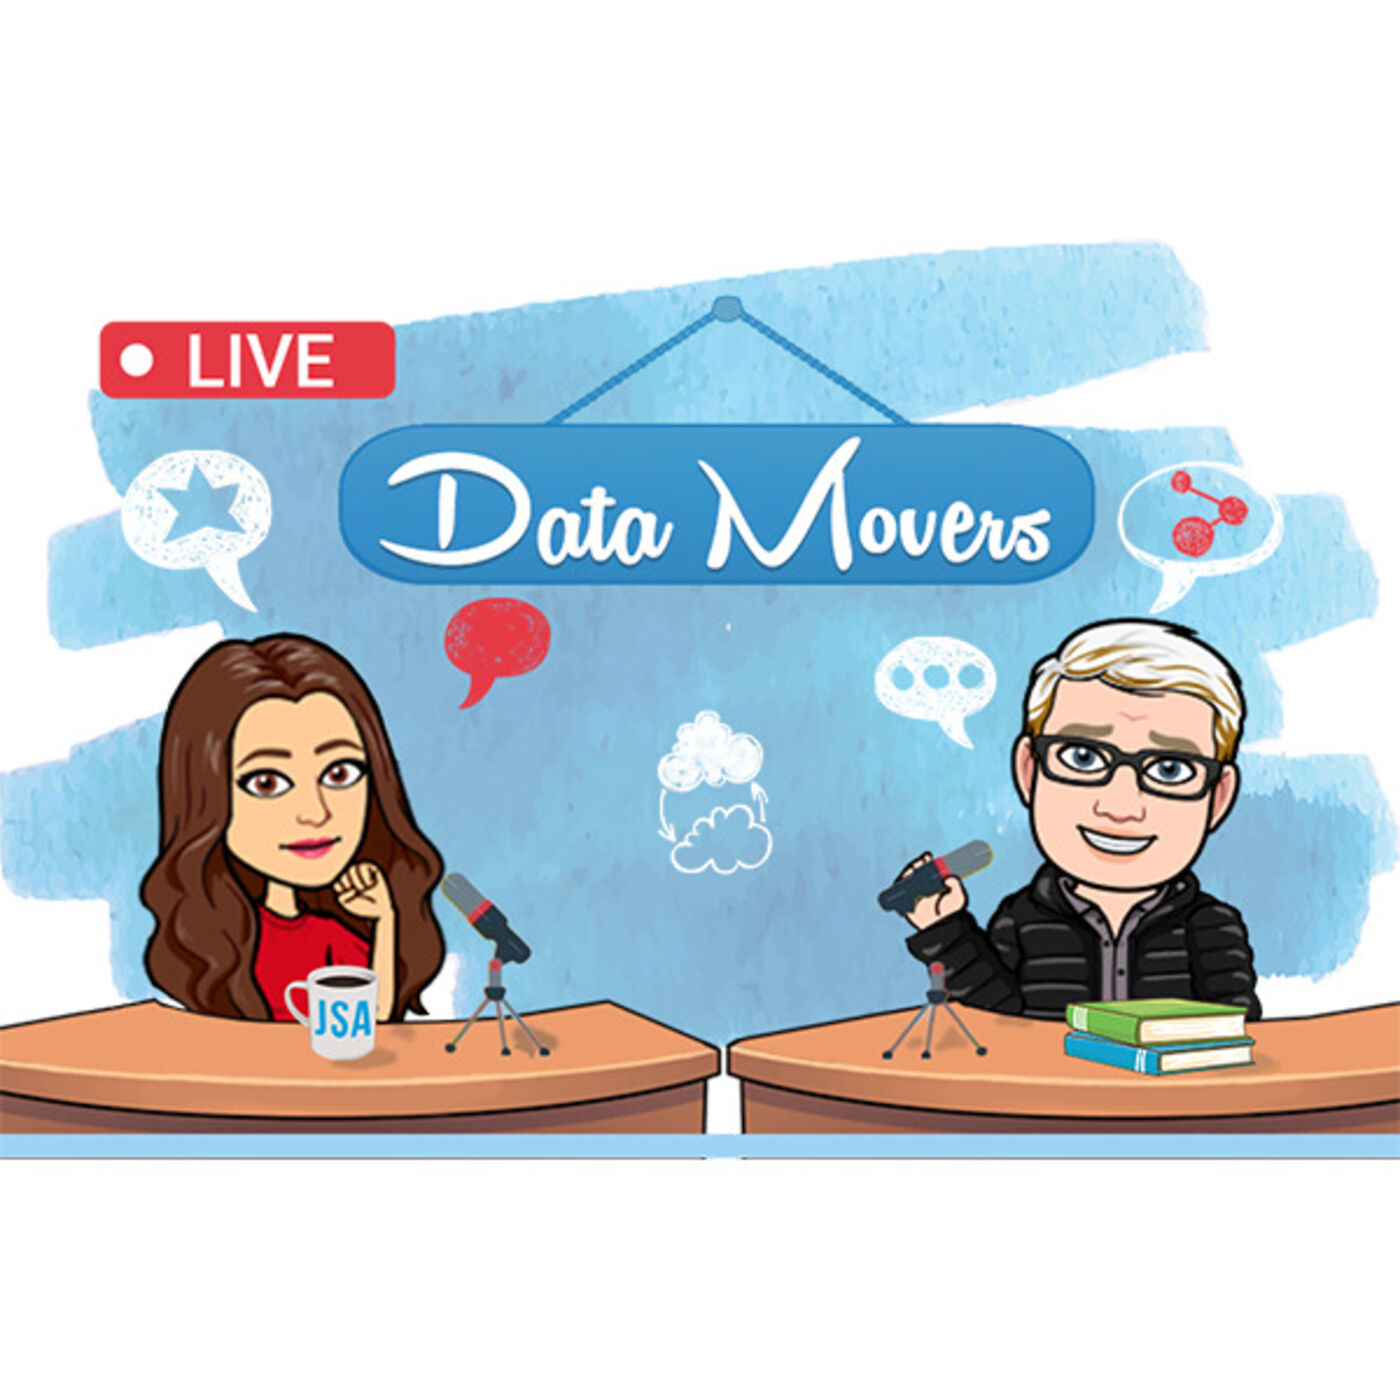 Data Movers Podcast - DataBank's Raul Martynek: Thriving During Uncertain Times and the Importance of Company Culture